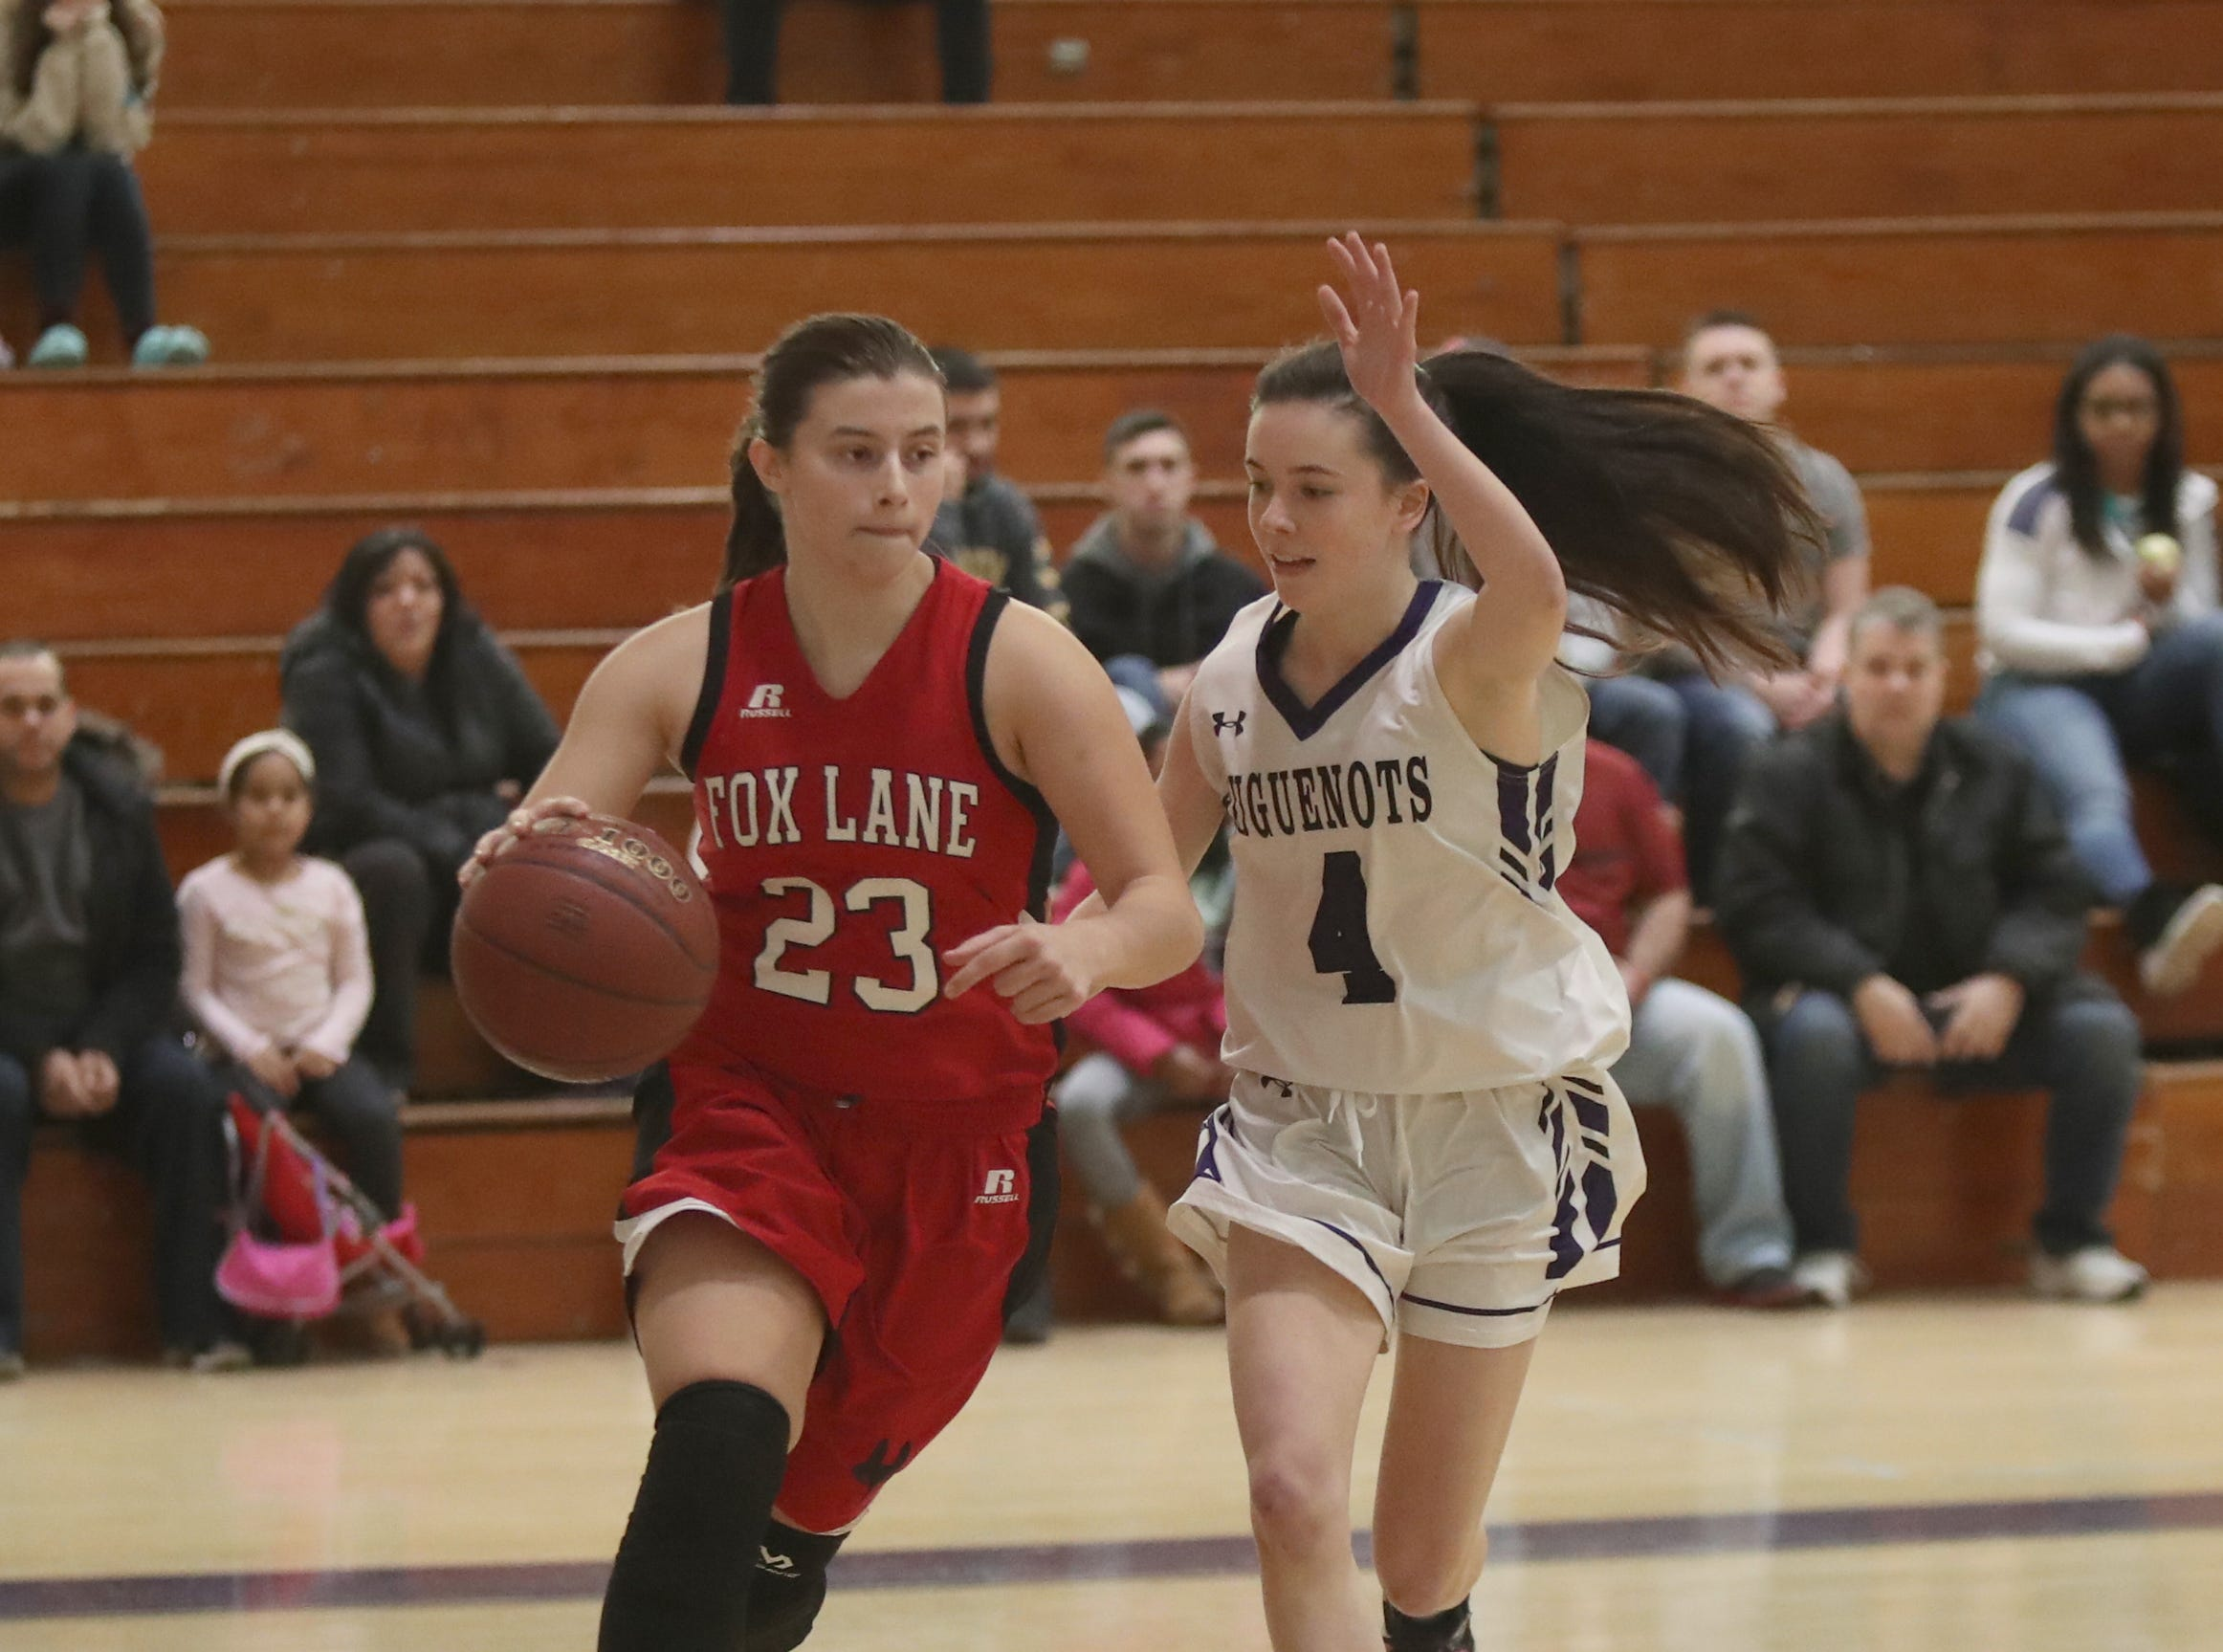 Fox Lane's Natalie Pence (23) drives the baseline as New Rochelle's Nora Fitzgerald (4) defends in the class AA girls basketball outbracket game at New Rochelle High School in New Rochelle on Saturday, February 16, 2019.